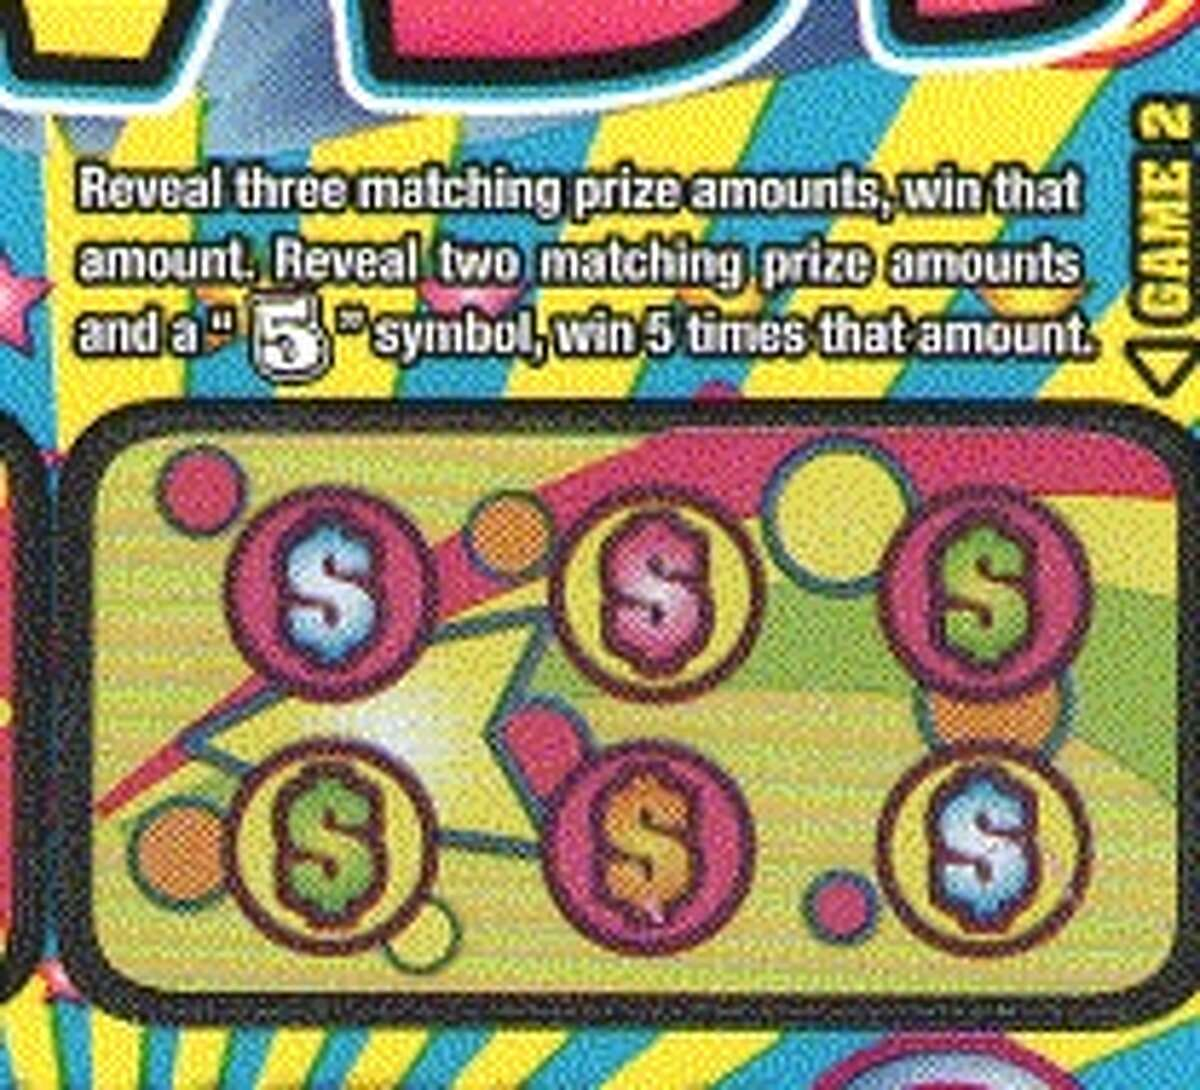 In game B, it also appears the player has two chances to win. The multiplier is also clearly explained.